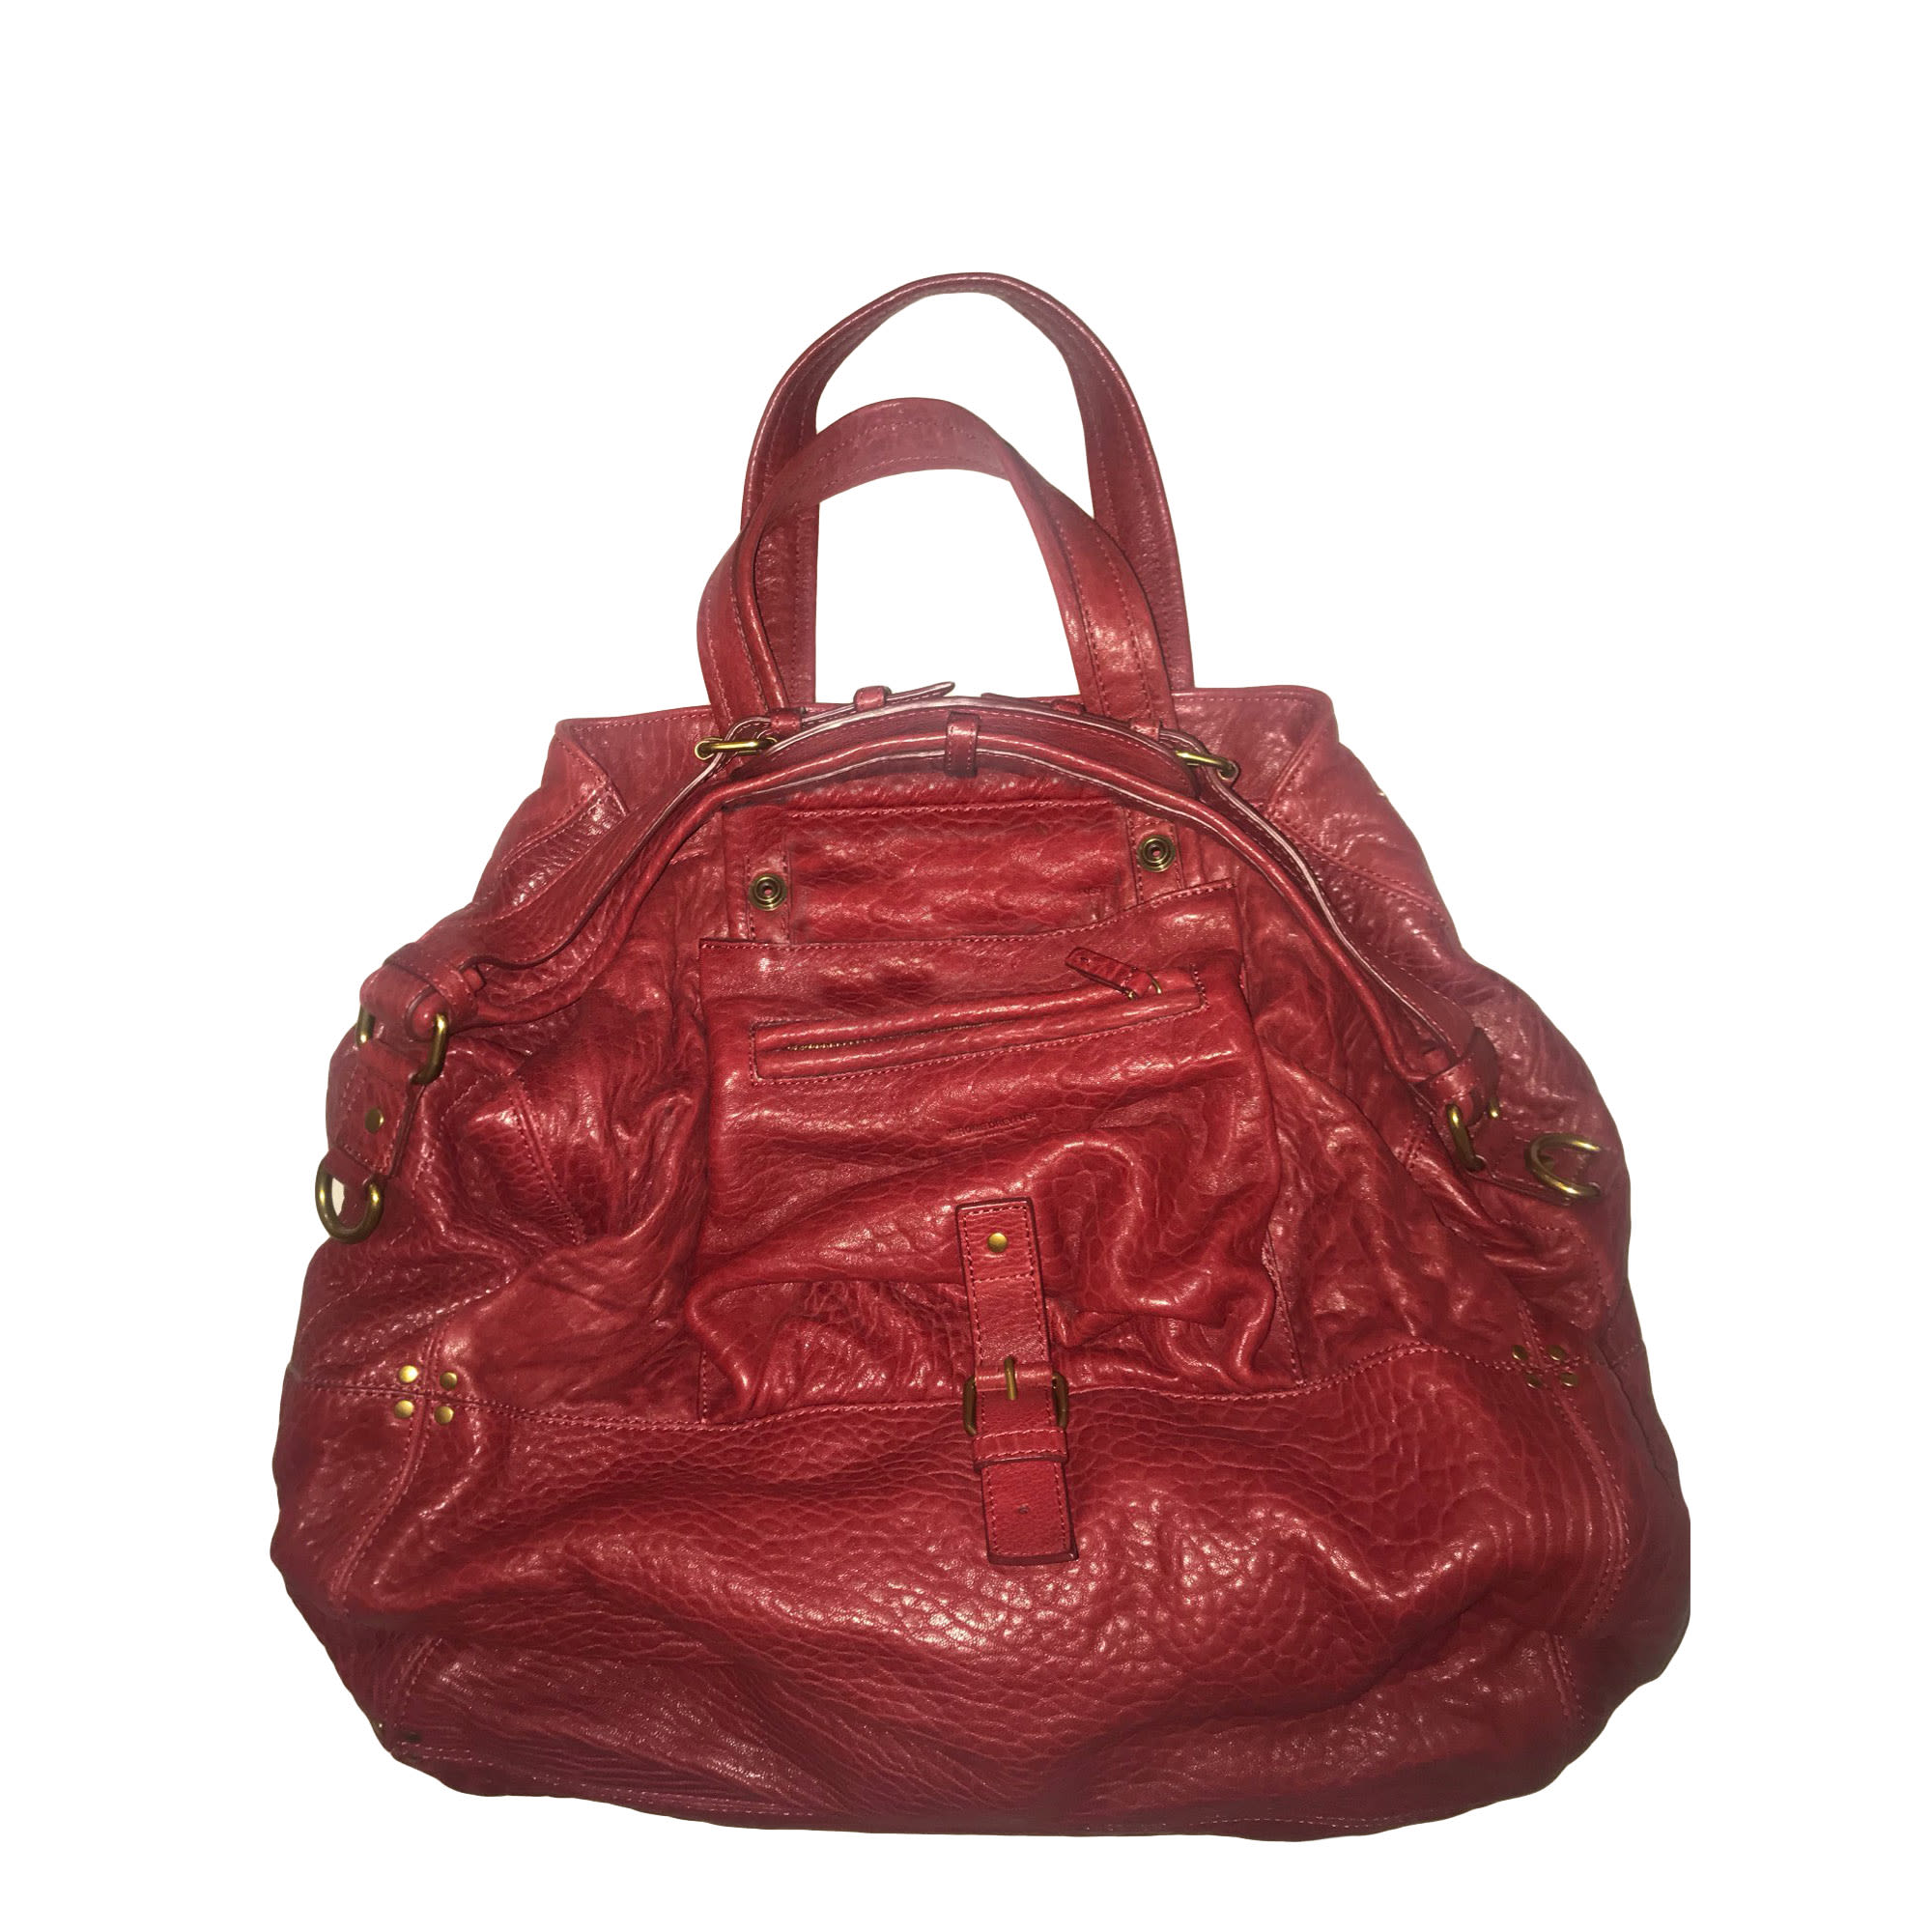 Sac XL en cuir JEROME DREYFUSS Rouge, bordeaux